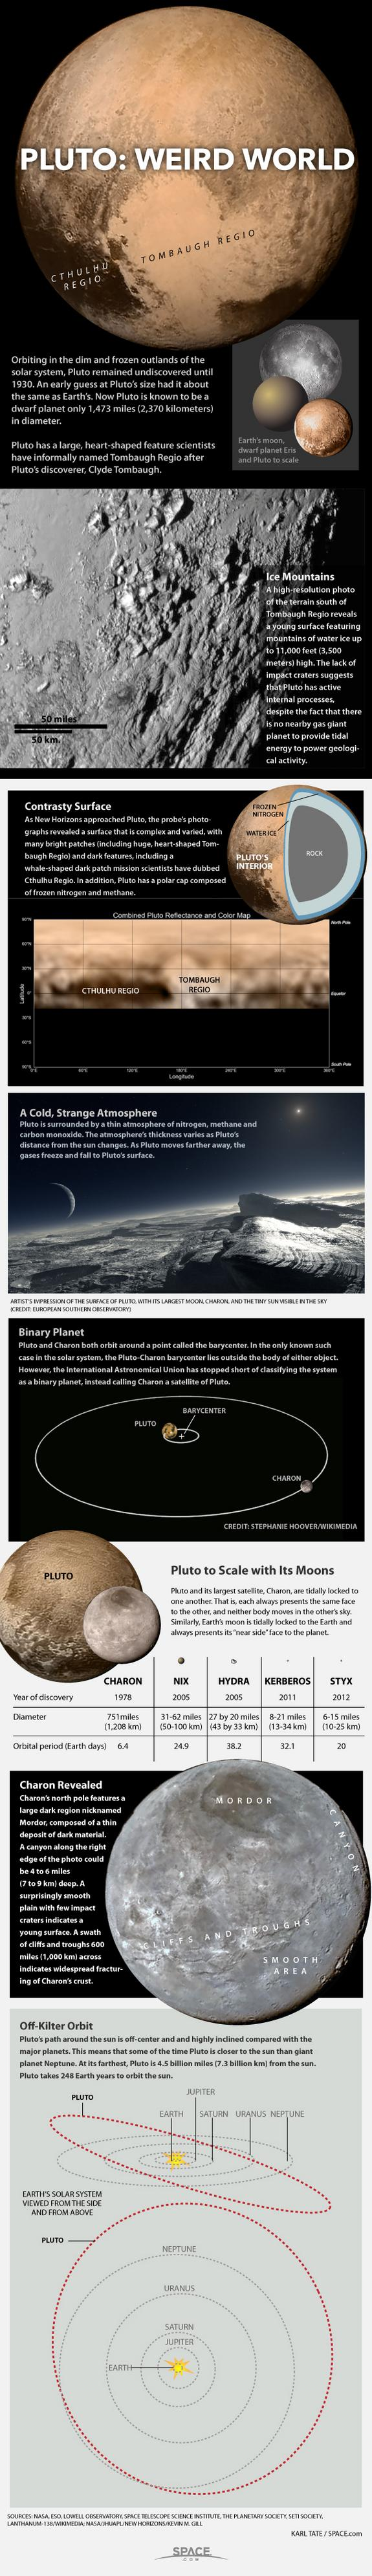 """Pluto and its moons orbit the sun near the edge of our solar system. <a href=""""http://www.space.com/12370-pluto-dwarf-planet-oddity-infographic.html"""" rel=""""nofollow noopener"""" target=""""_blank"""" data-ylk=""""slk:Learn all about Pluto's weirdly eccentric orbit, four moons and more in this Space.com infograp"""" class=""""link rapid-noclick-resp"""">Learn all about Pluto's weirdly eccentric orbit, four moons and more in this Space.com infograp</a>"""